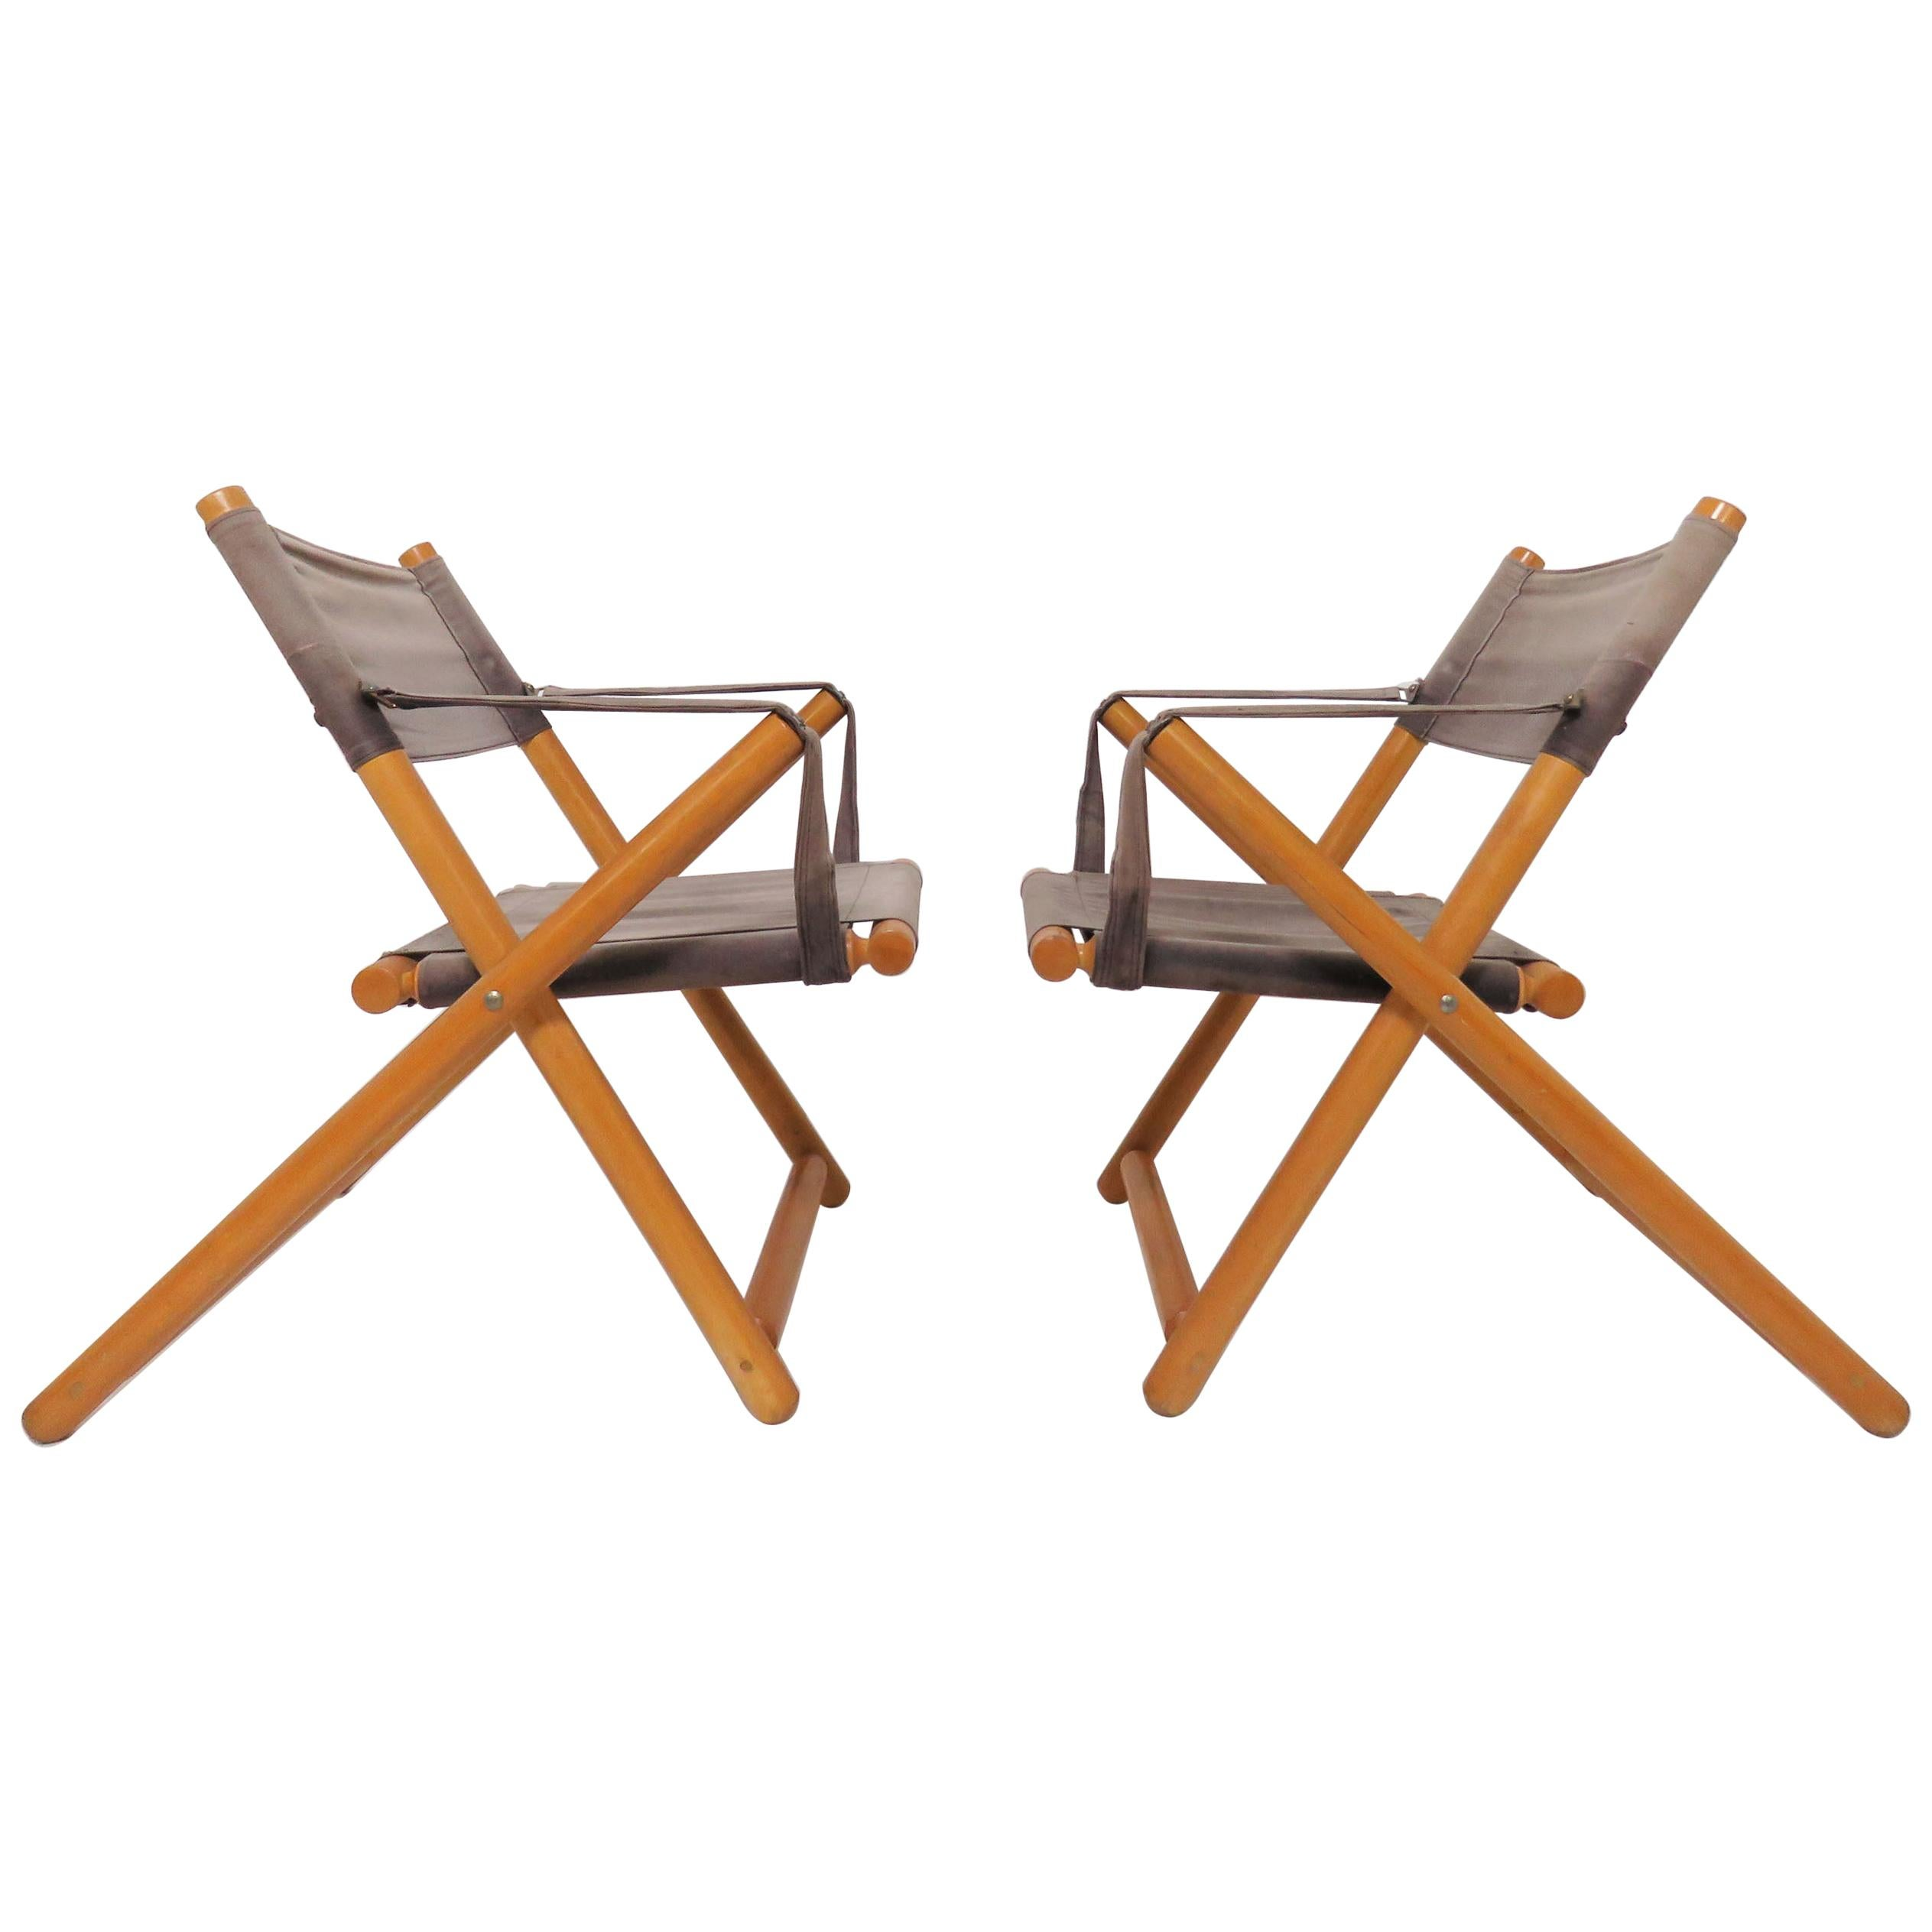 Pair of Brazilian Móveis Gerdau Folding Safari Sling Chairs, circa 1970s